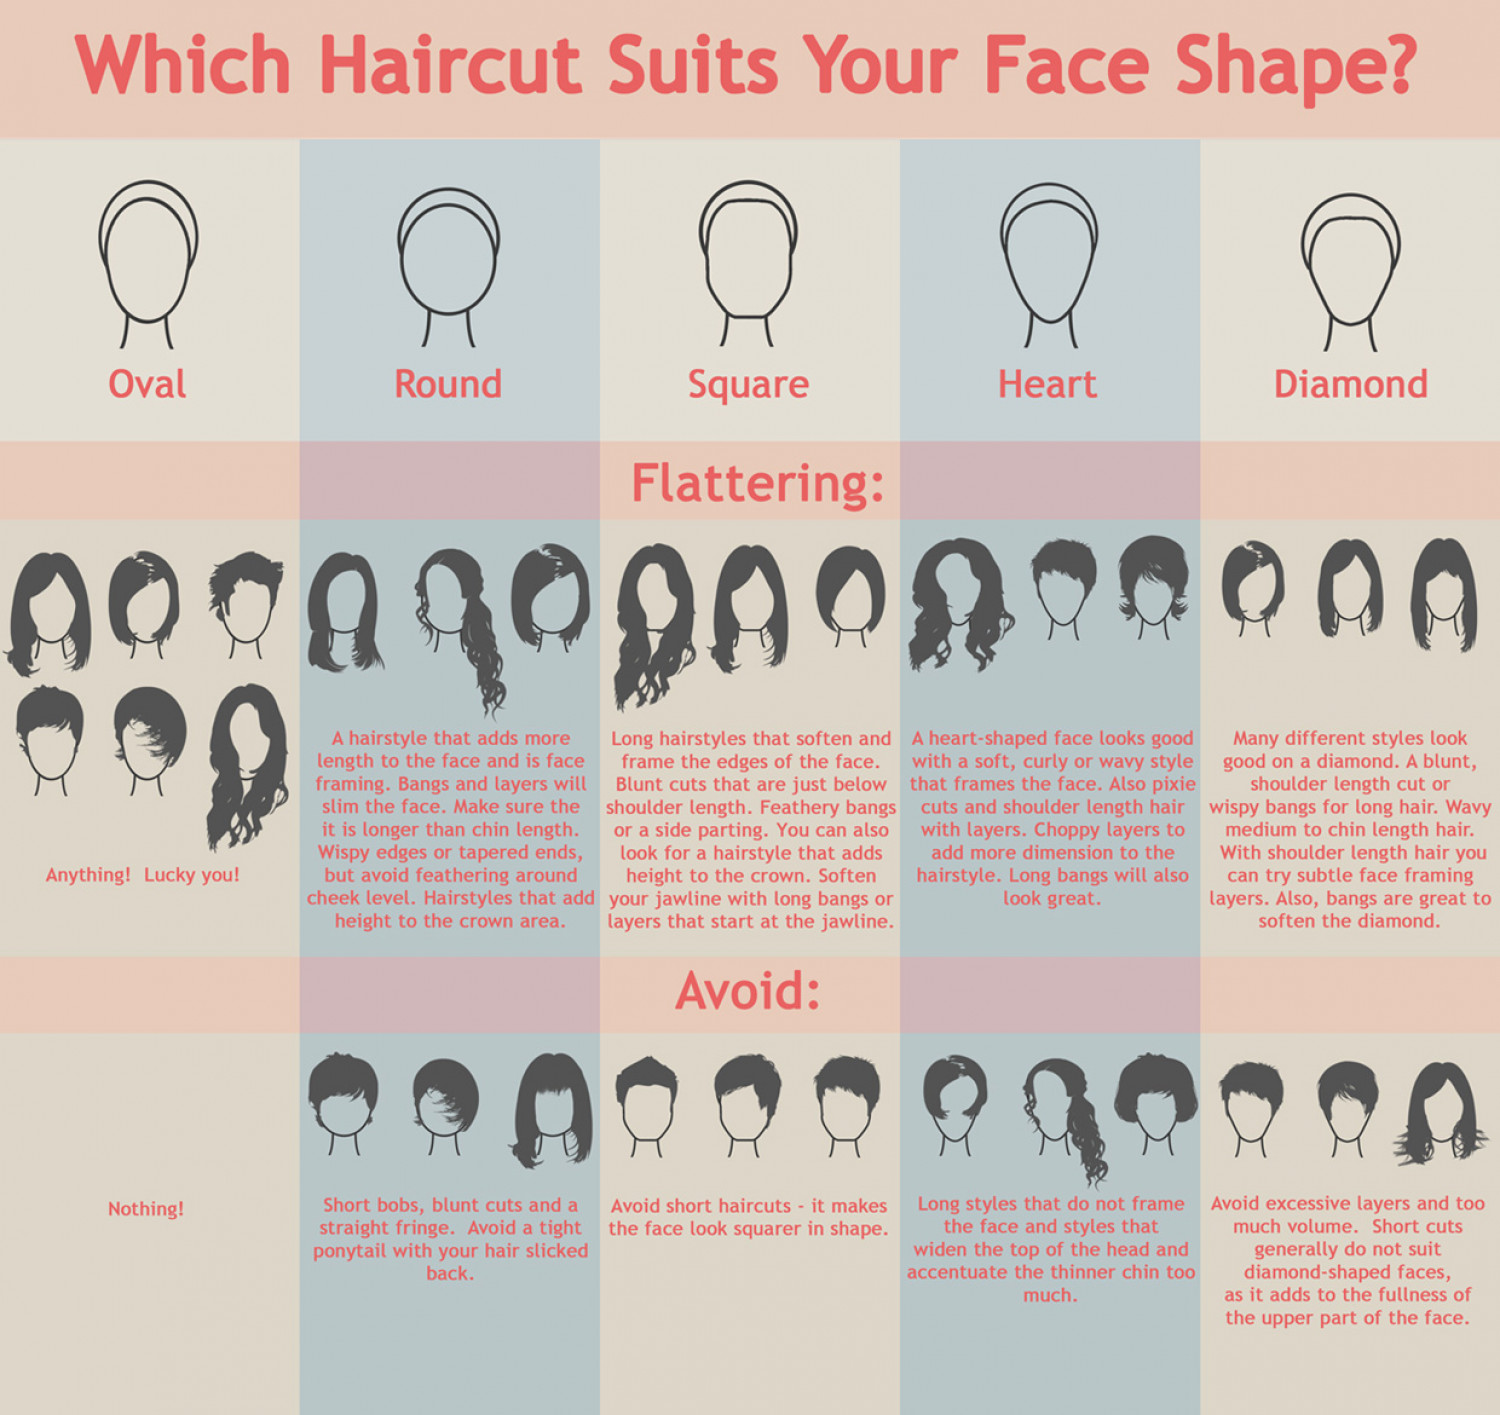 Which Haircut Suits Your Face Shape Visual